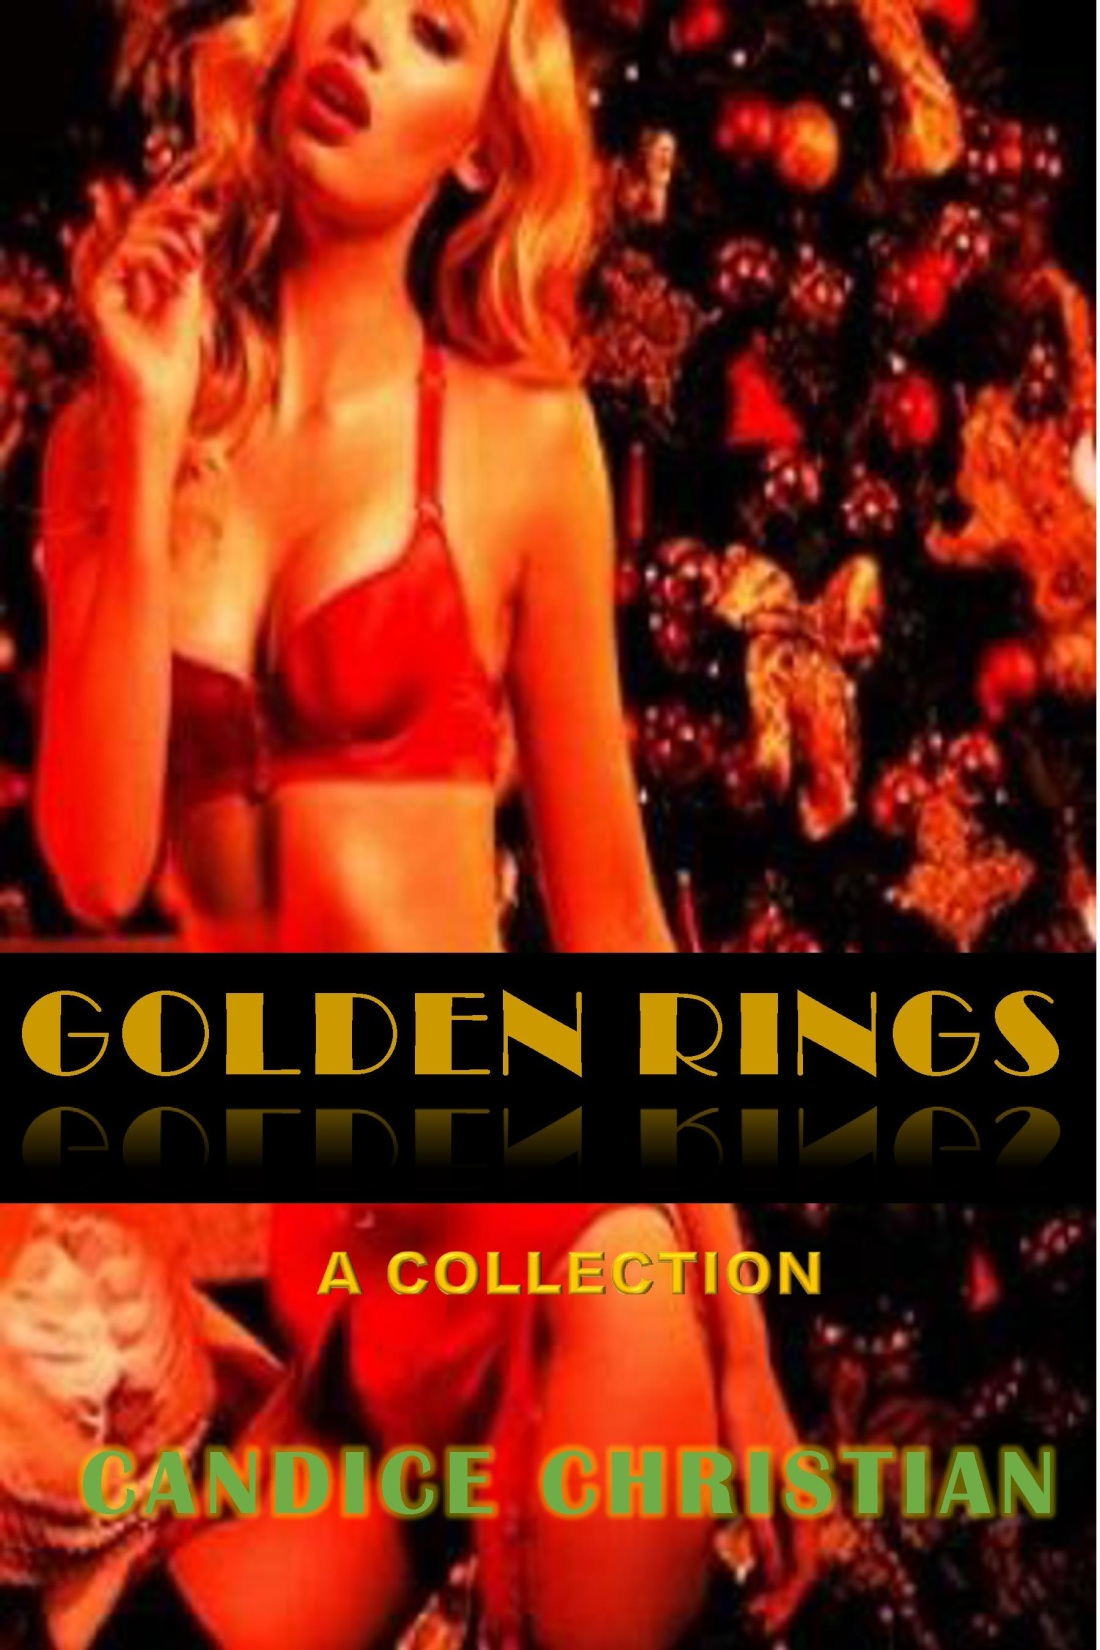 GOLDEN RINGS COVER